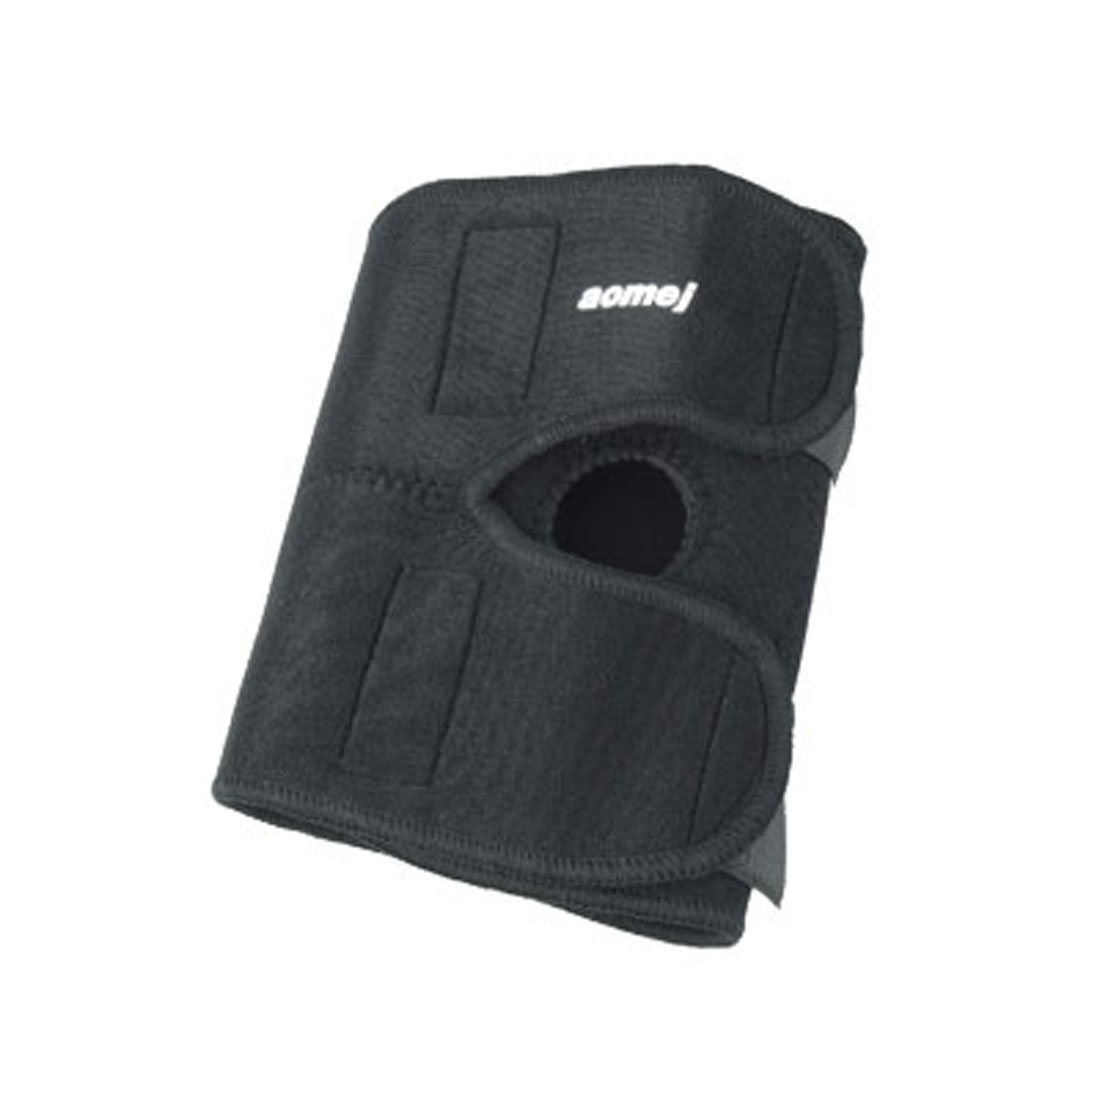 Black Stretch Elastic Brace Knee Support